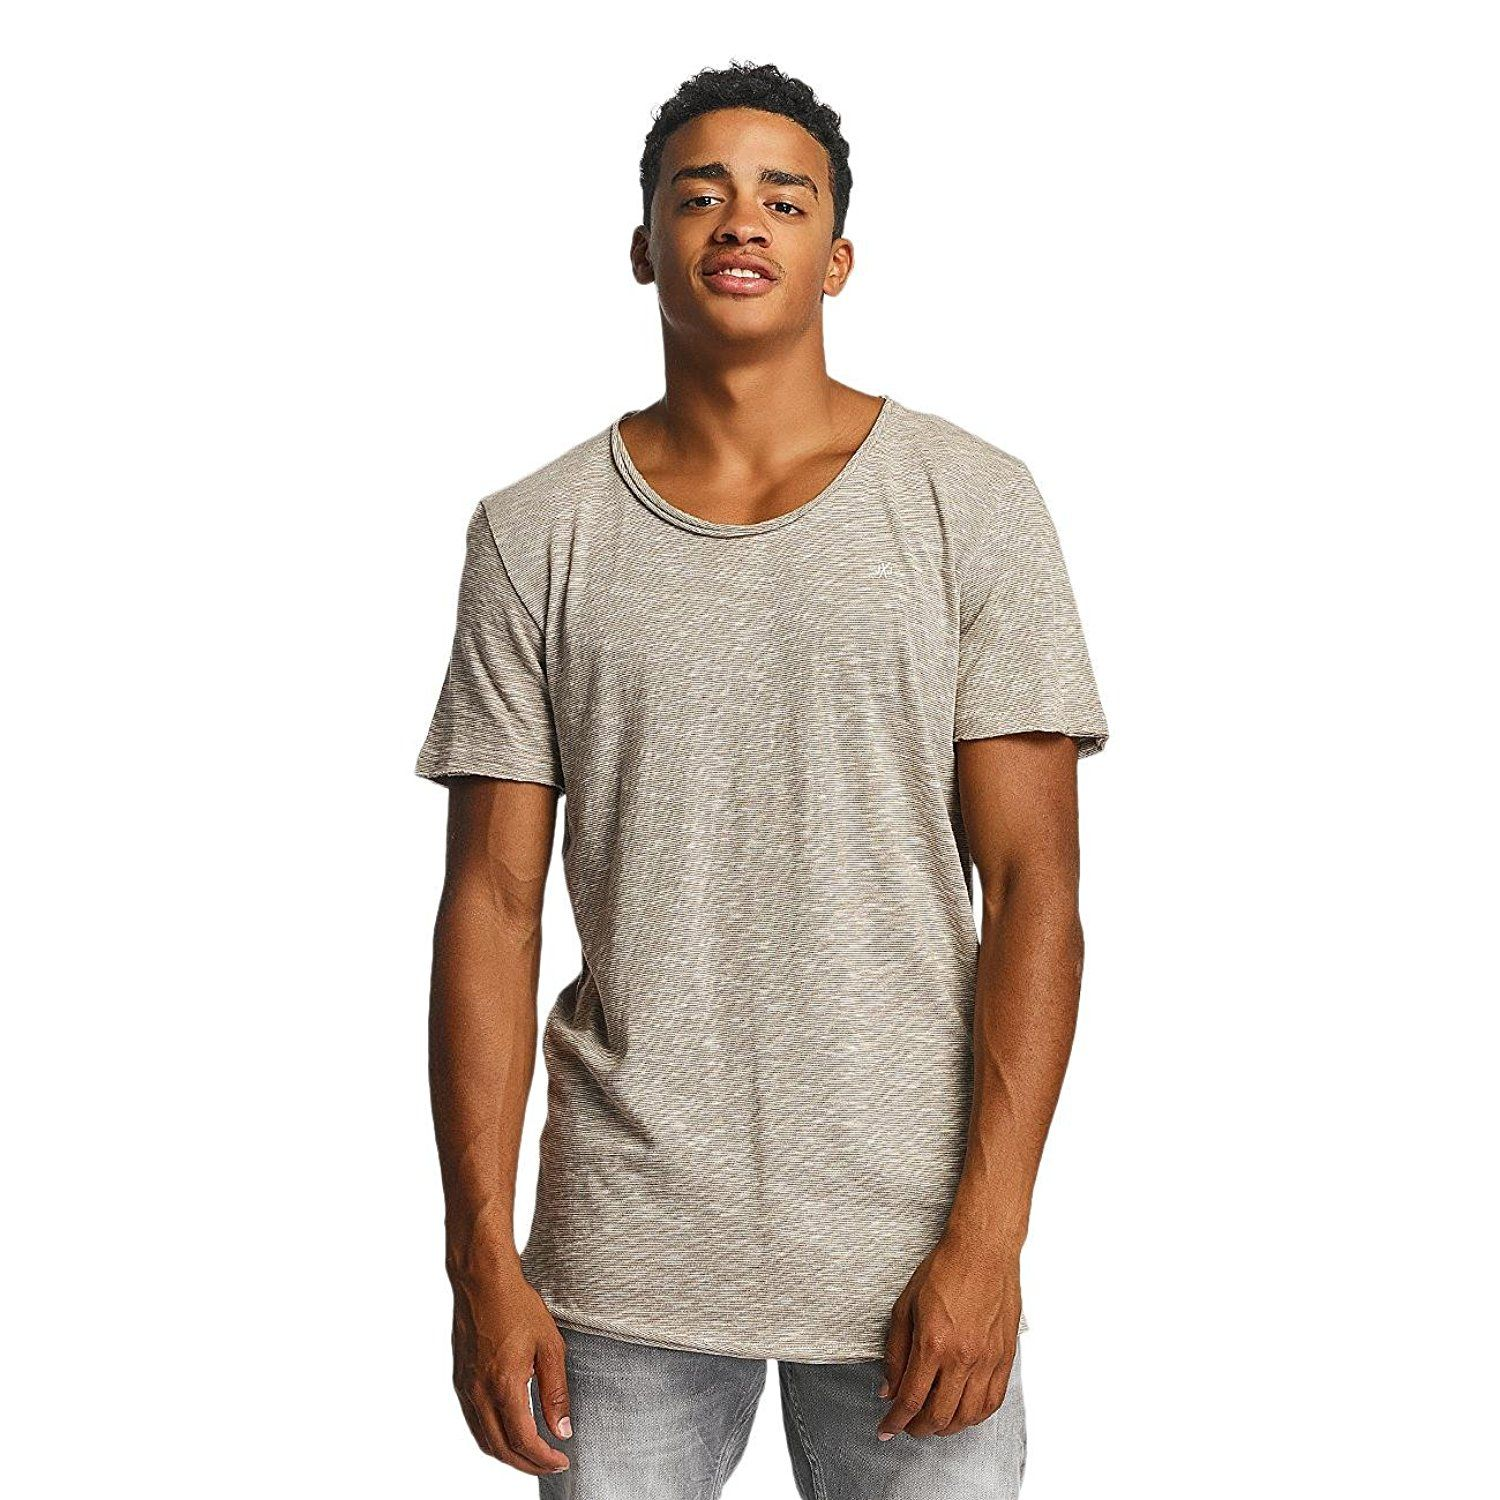 Jack Jones Men Overwear T Shirt Jortuner Amazon Co Uk Clothing